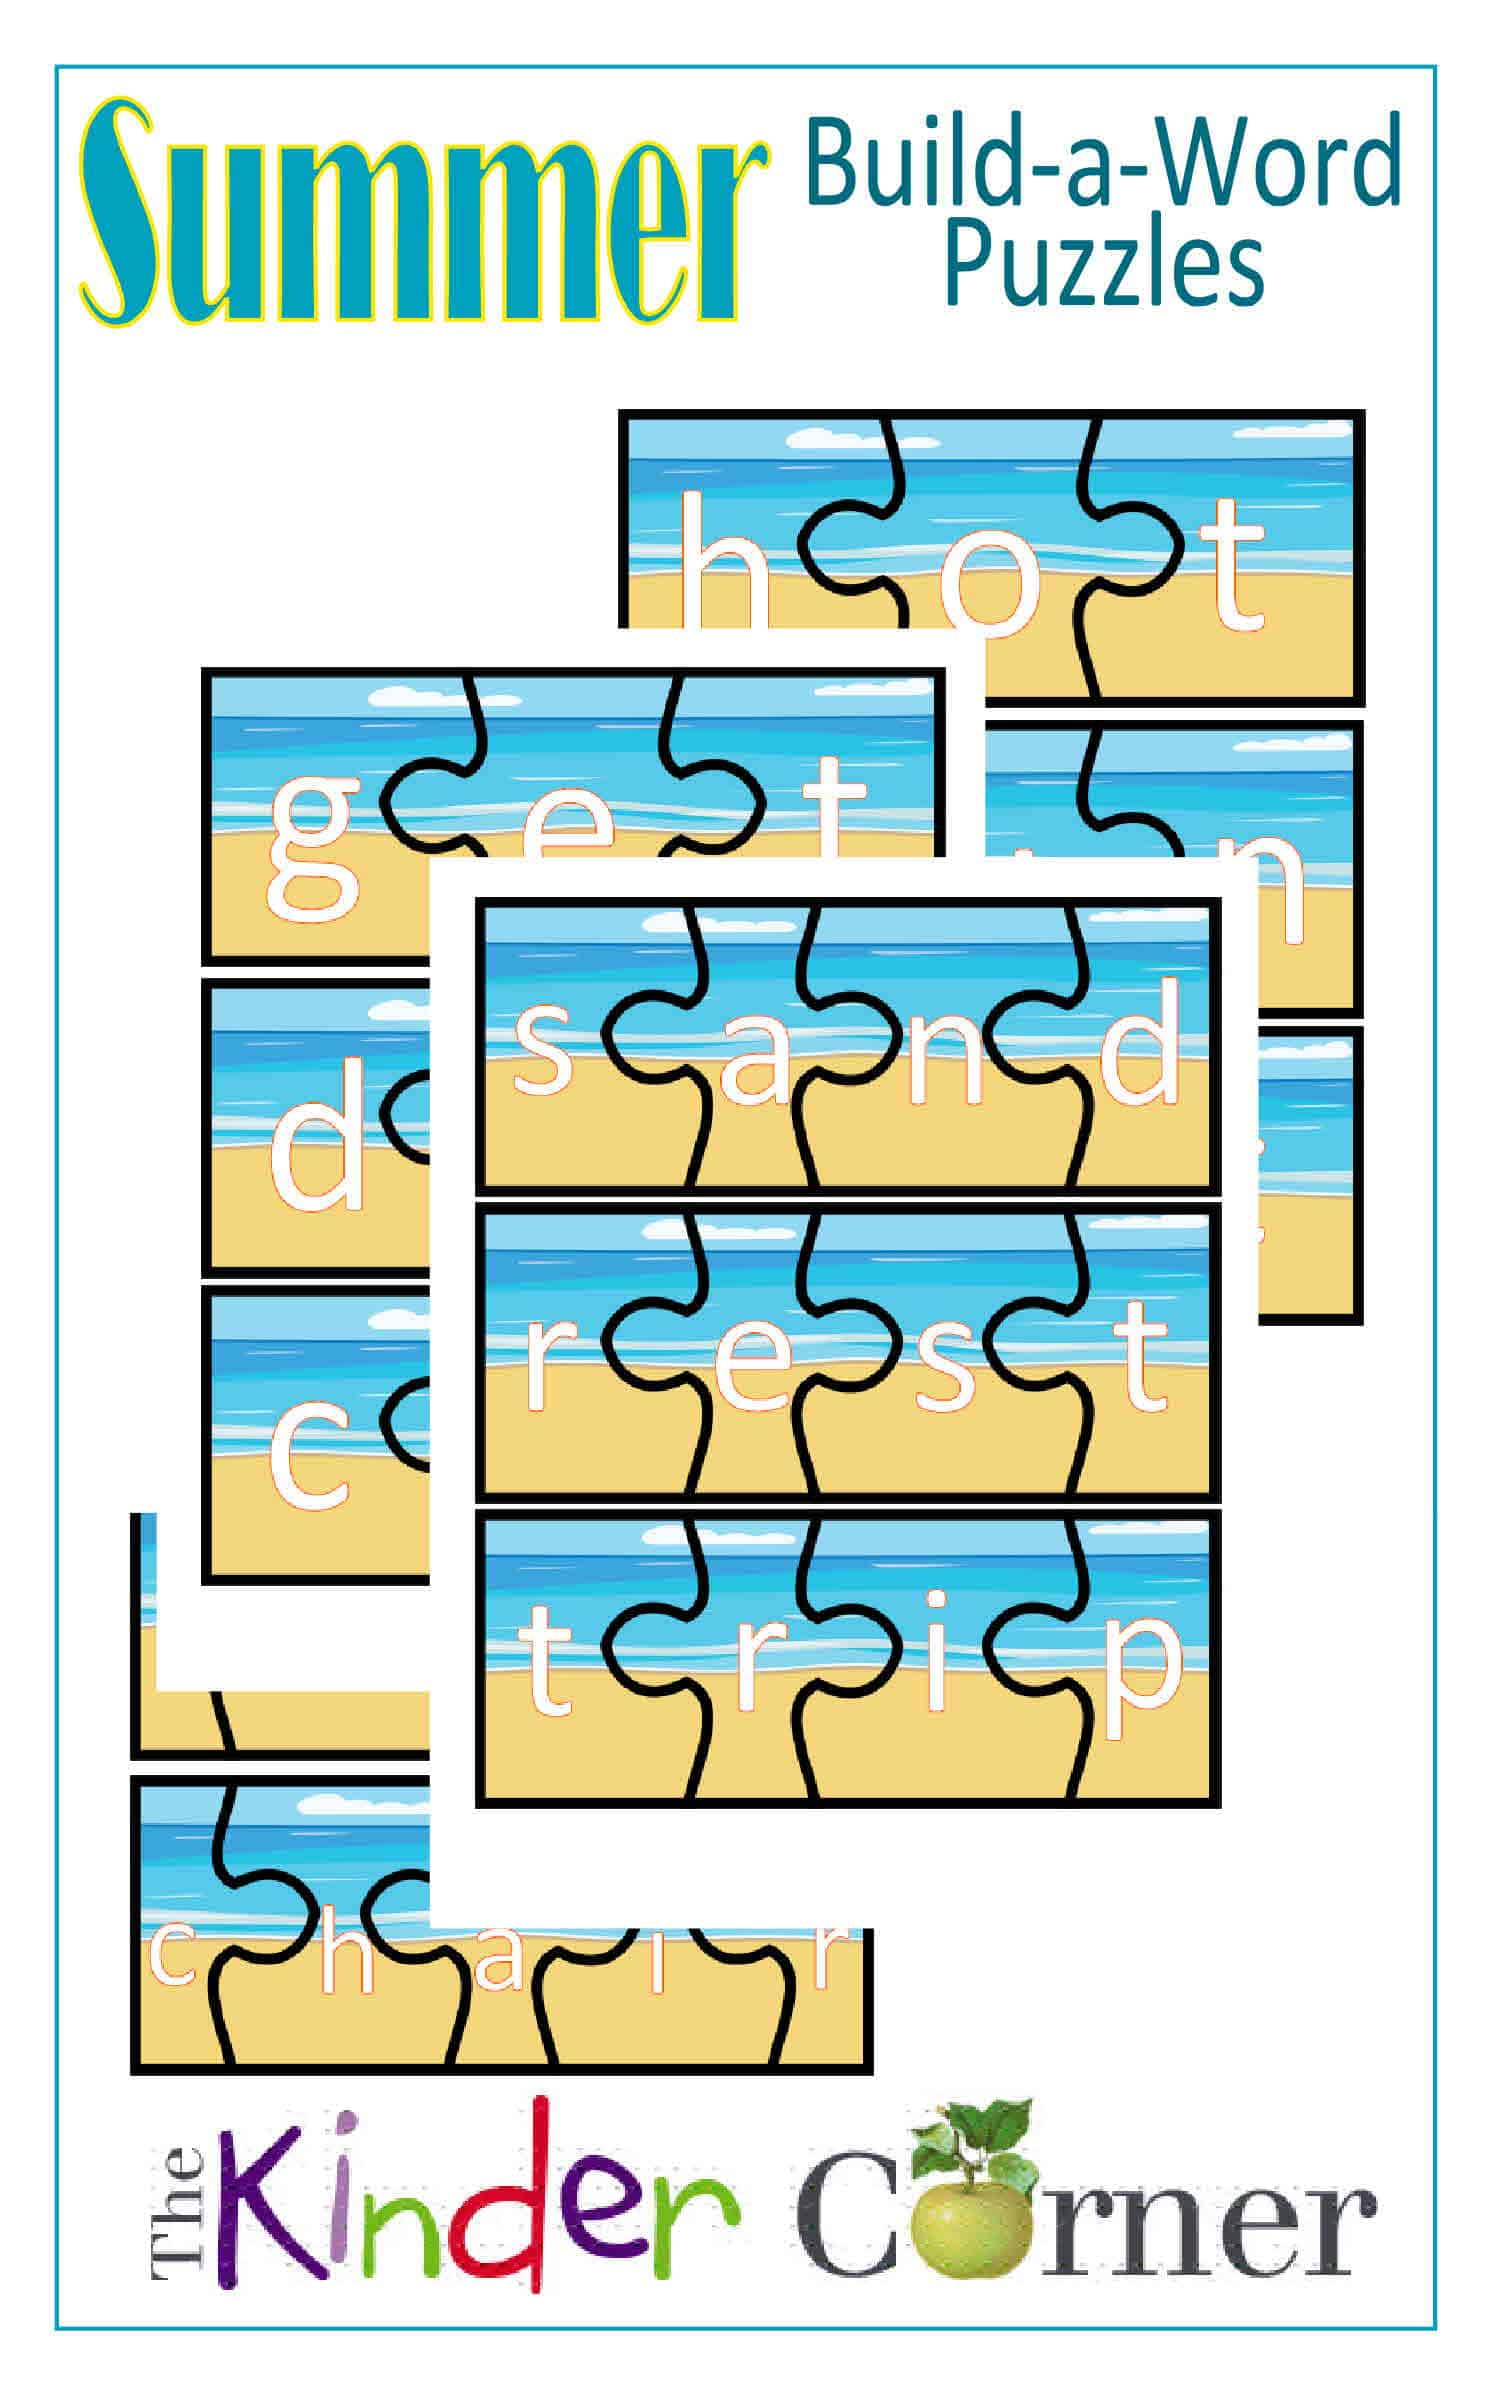 Summer Build-a-Word Puzzles